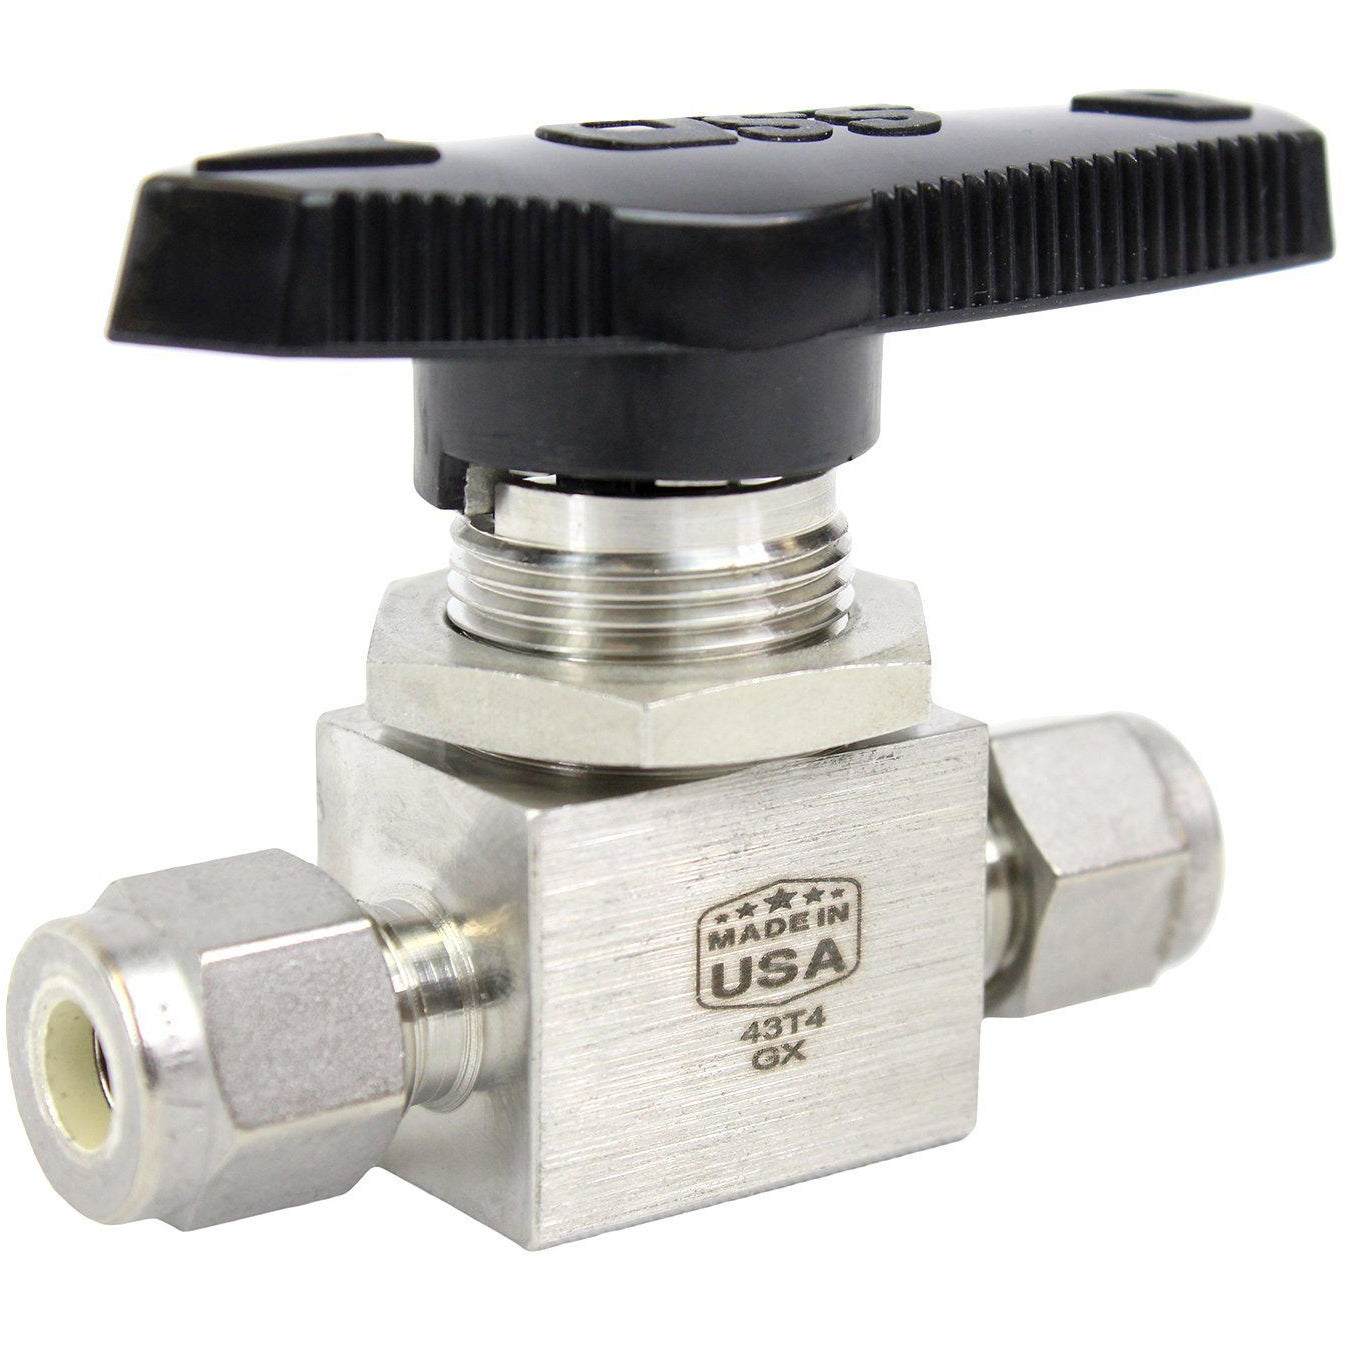 SSP - 2 Way Ball Valve - Fractional Tube Fitting Shop All Categories SSP Corporation